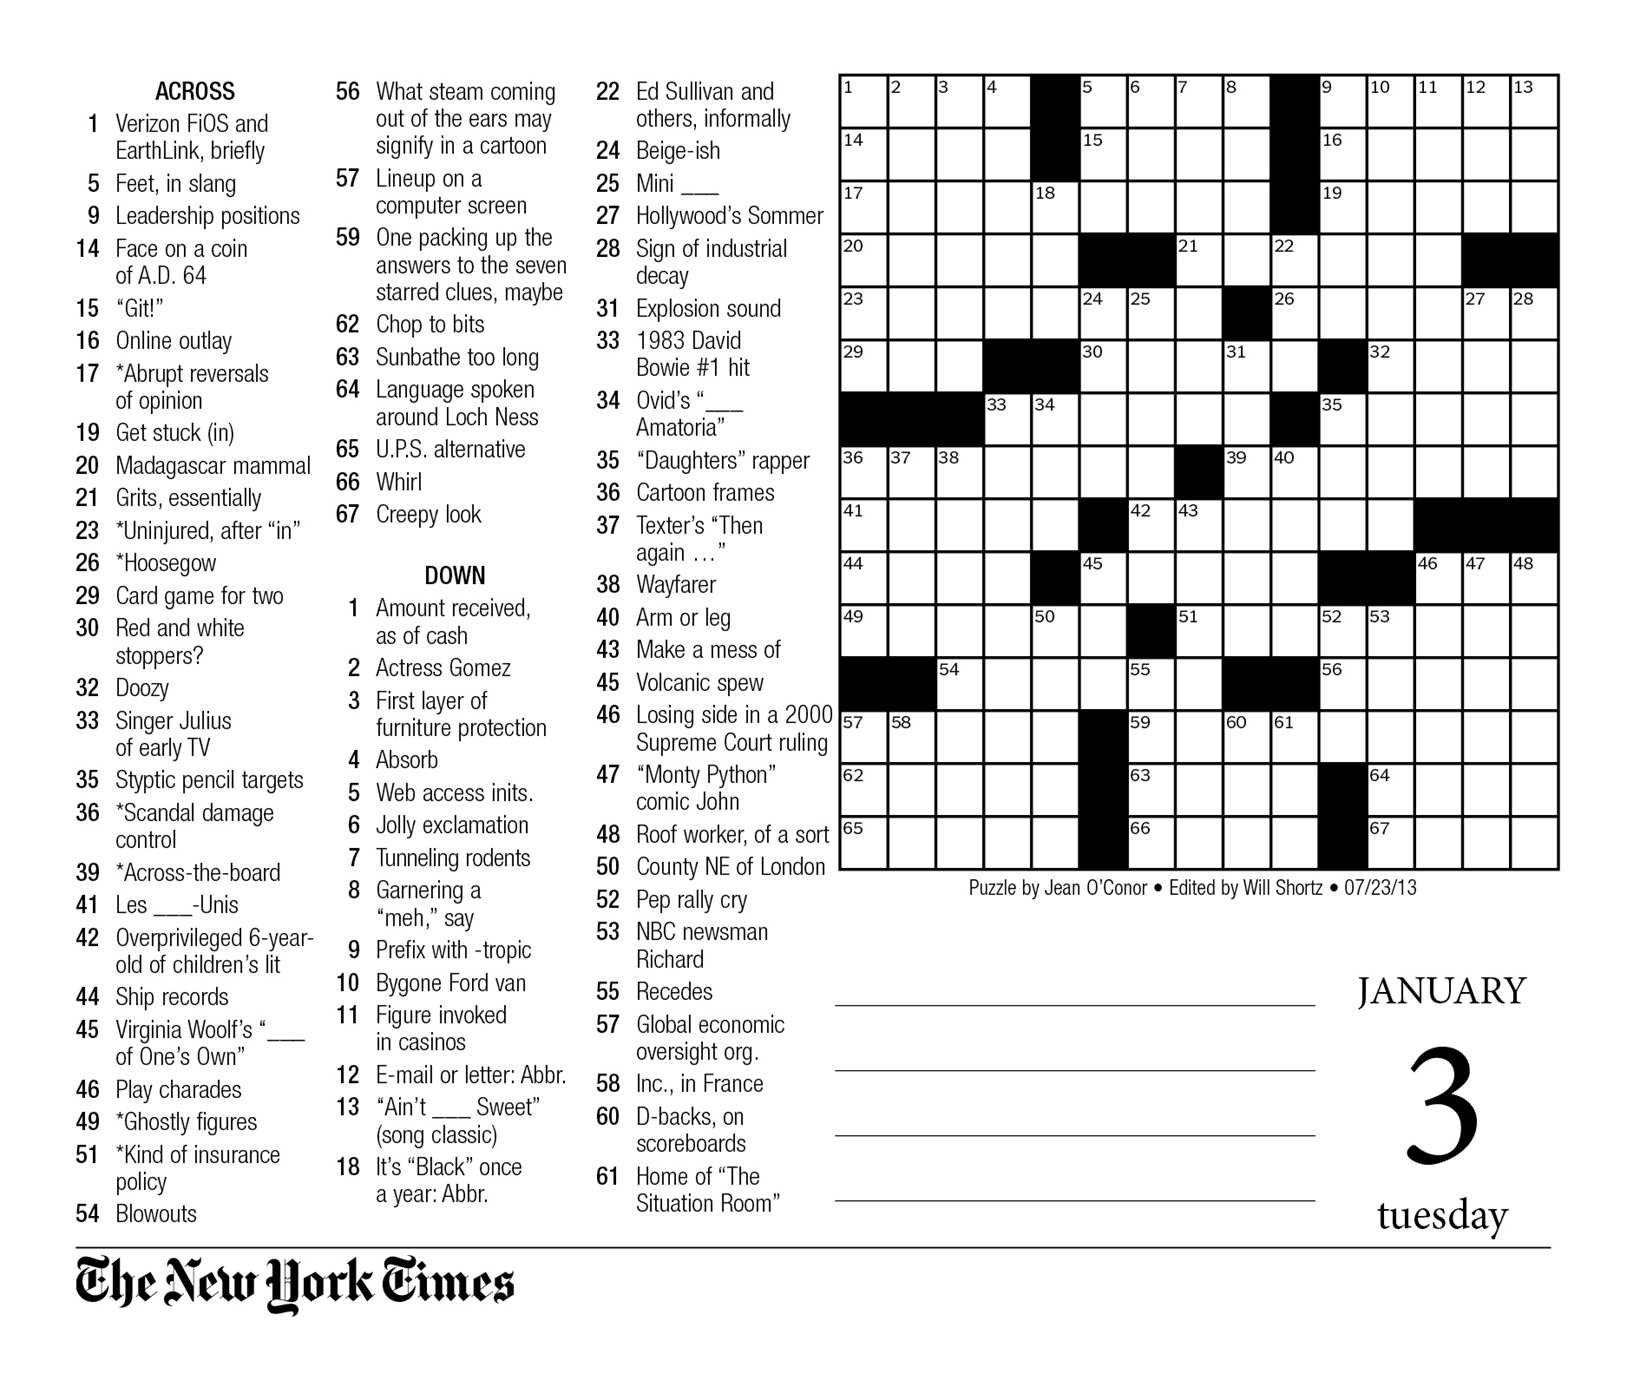 Play Free Crossword Puzzles From The Washington Post - The - Free - Washington Post Sunday Crossword Puzzle Printable